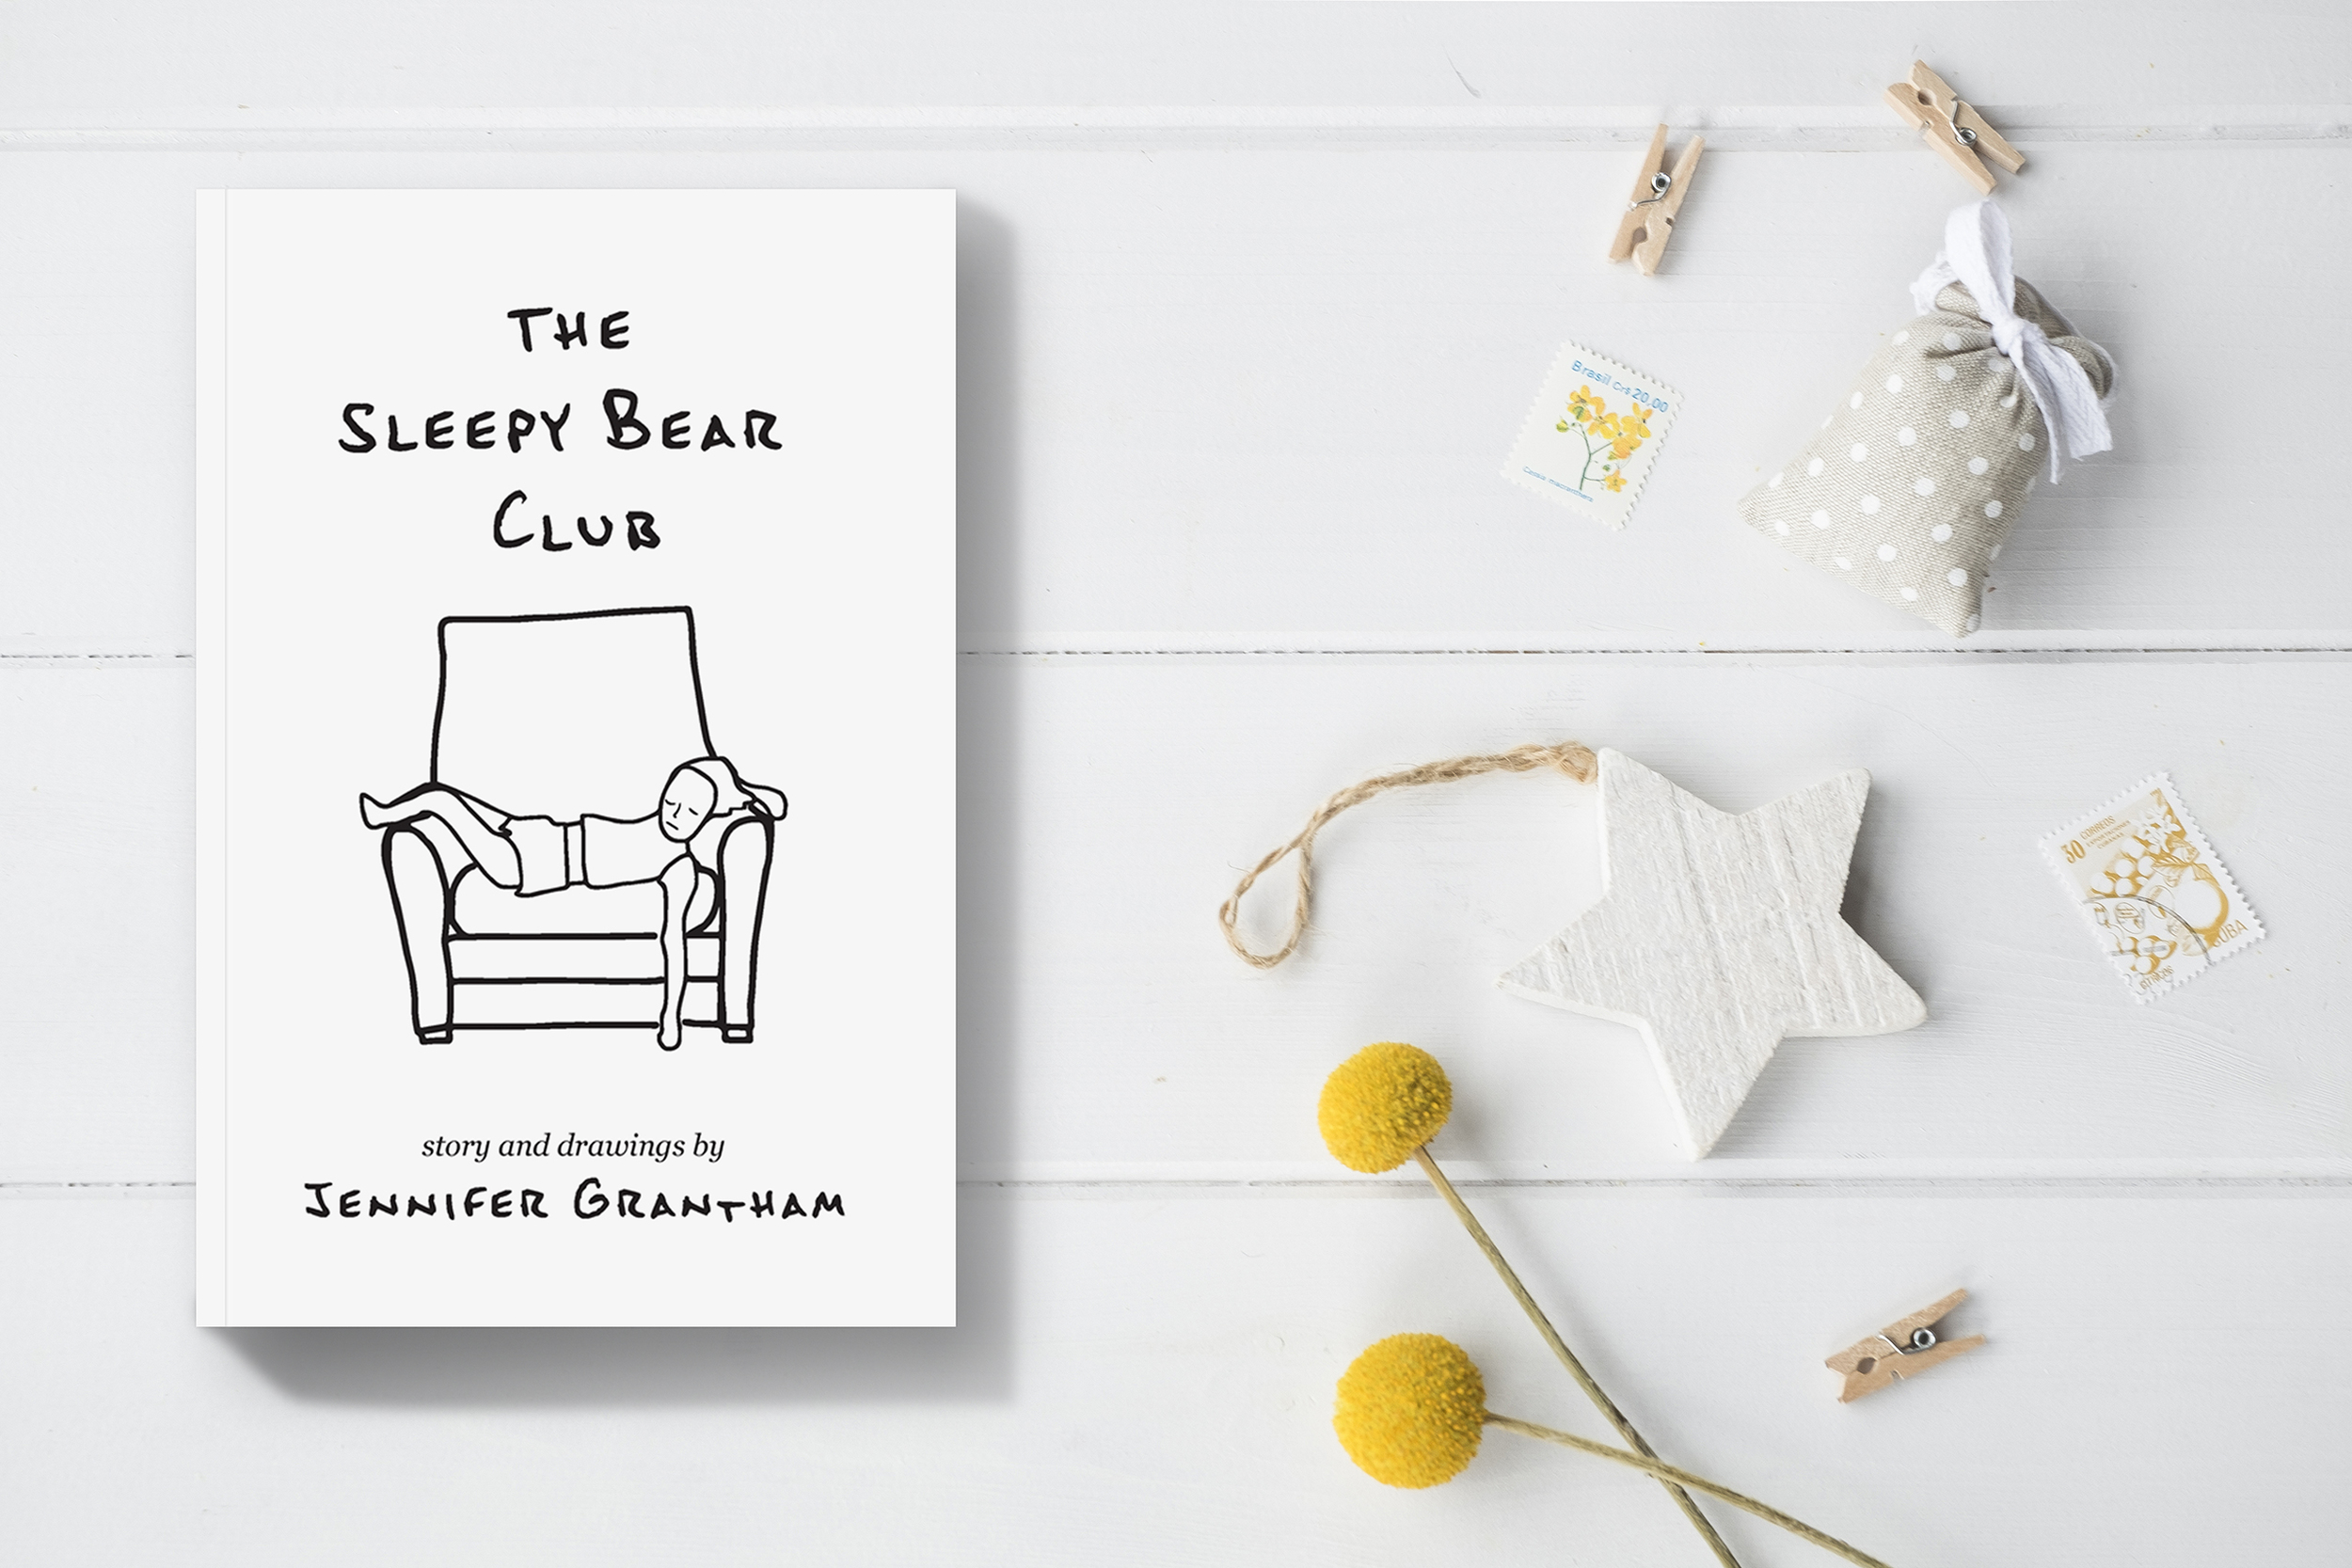 The Sleepy Bear Club children's bedtime story by Jennifer Grantham